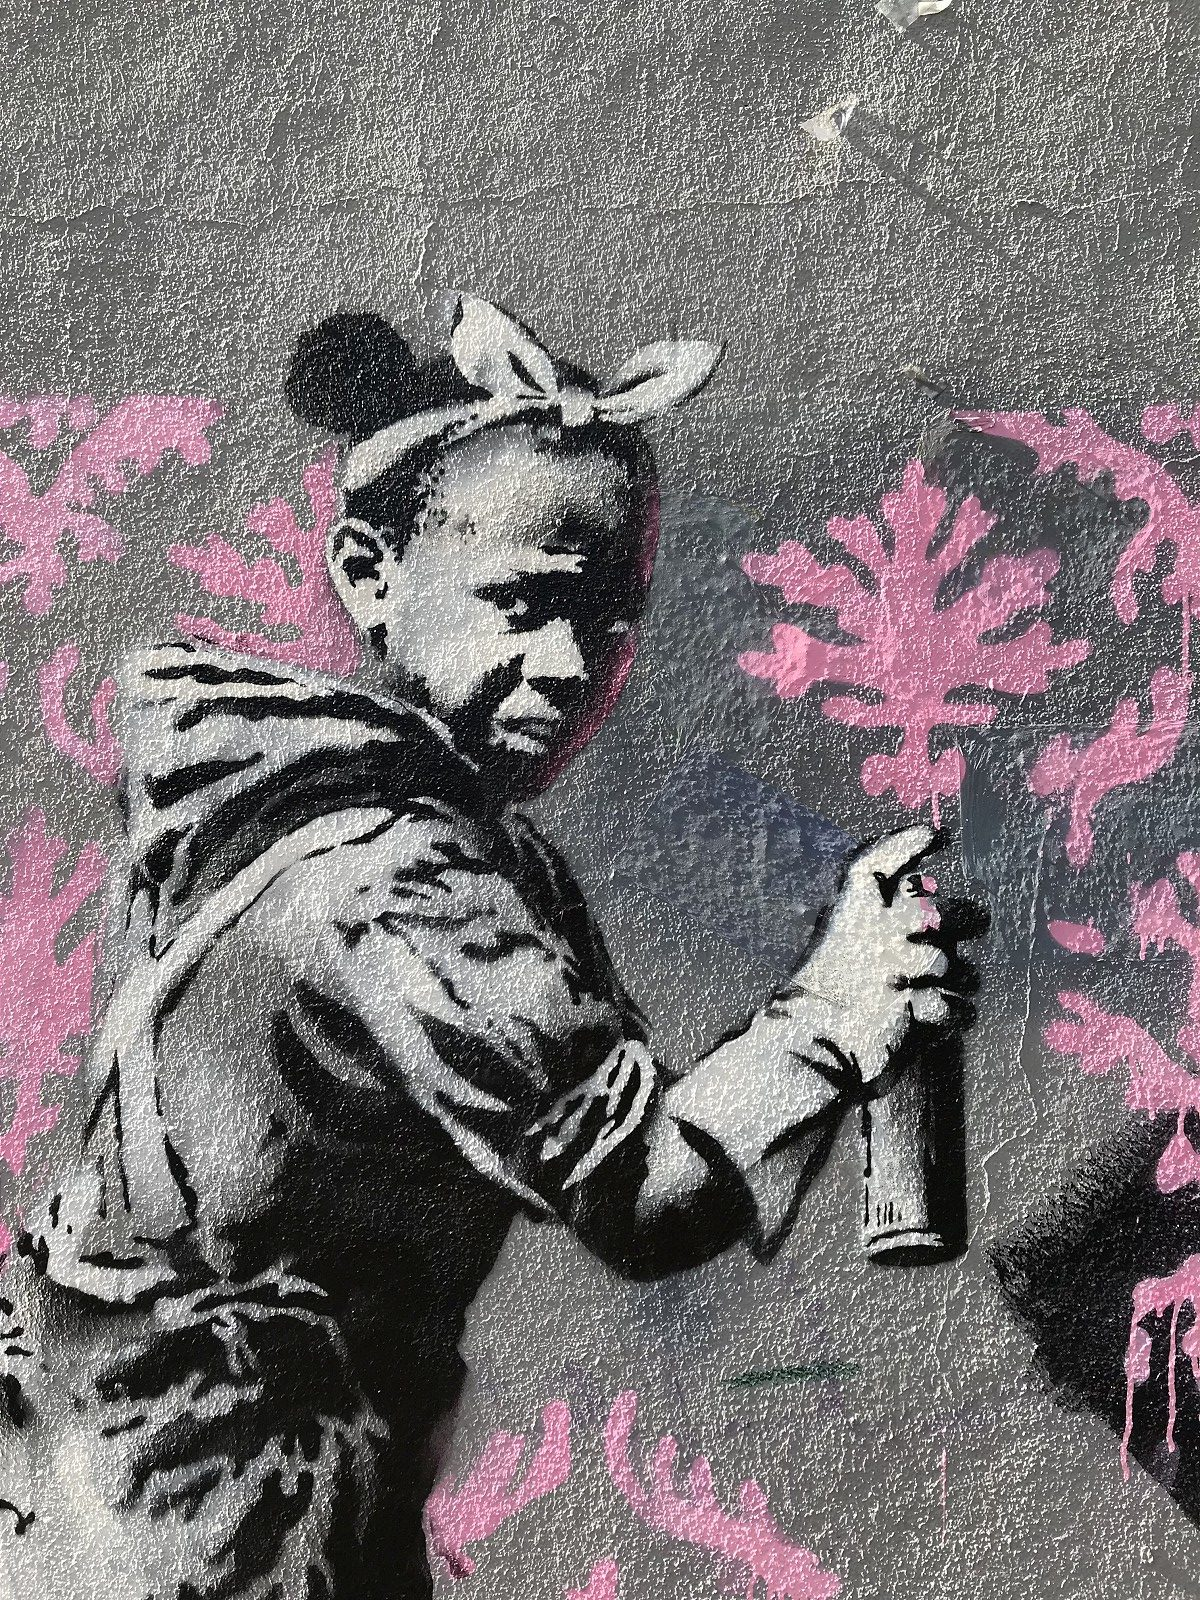 https://www.thisiscolossal.com/wp-content/uploads/2018/06/banksy_paris02-e1529826993862.jpeg